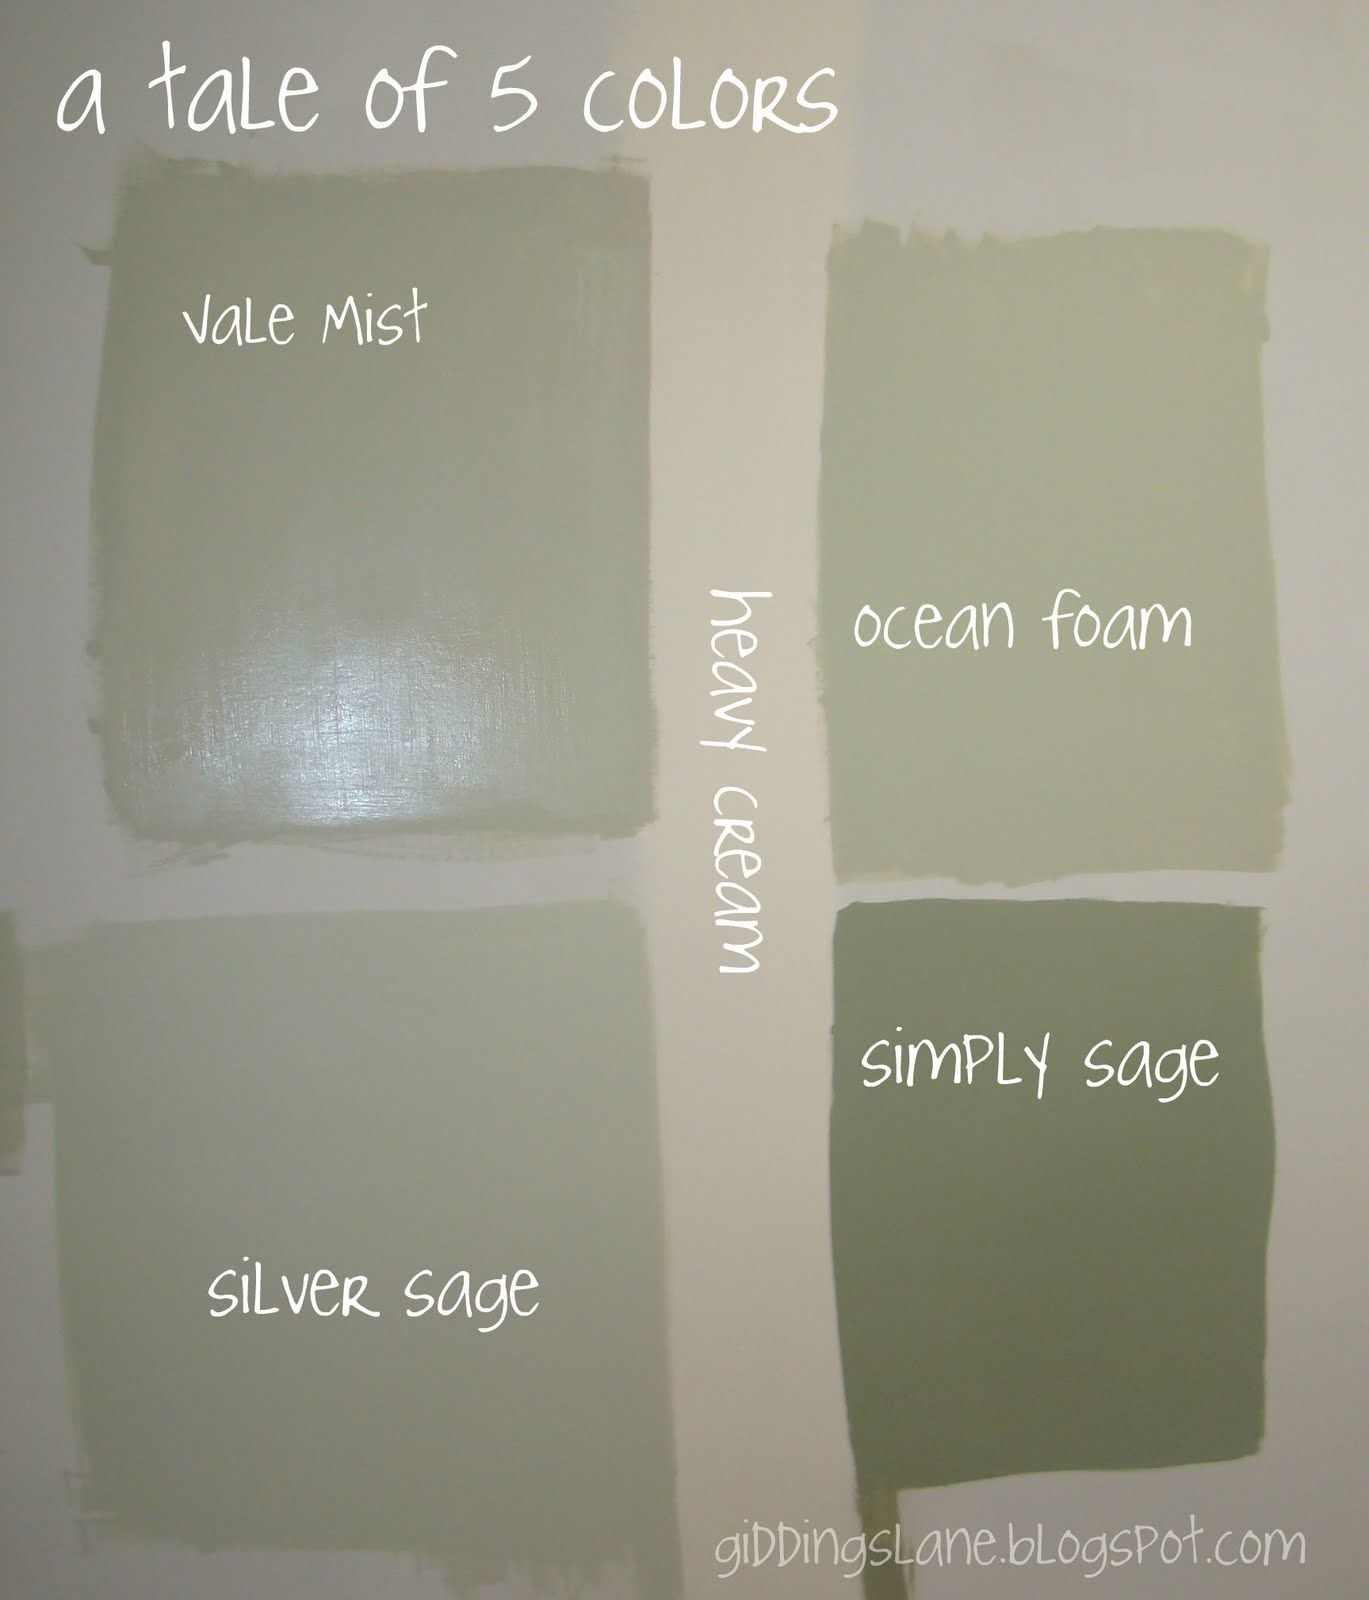 Giddings Lane The Finale To 5 Colors Behr Paint